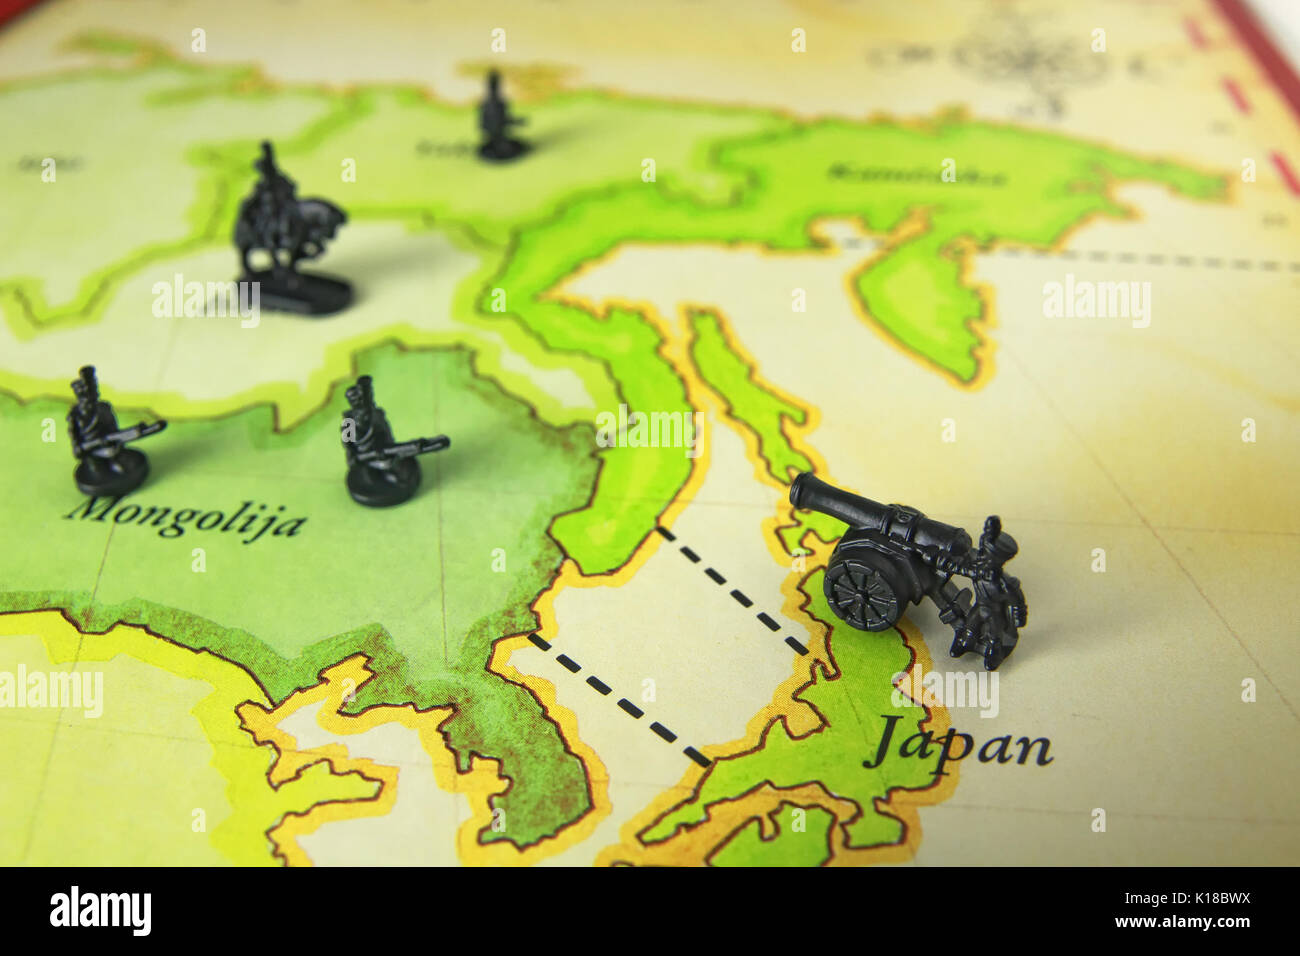 Risk game map stock photos risk game map stock images alamy risk game of war stock image gumiabroncs Image collections